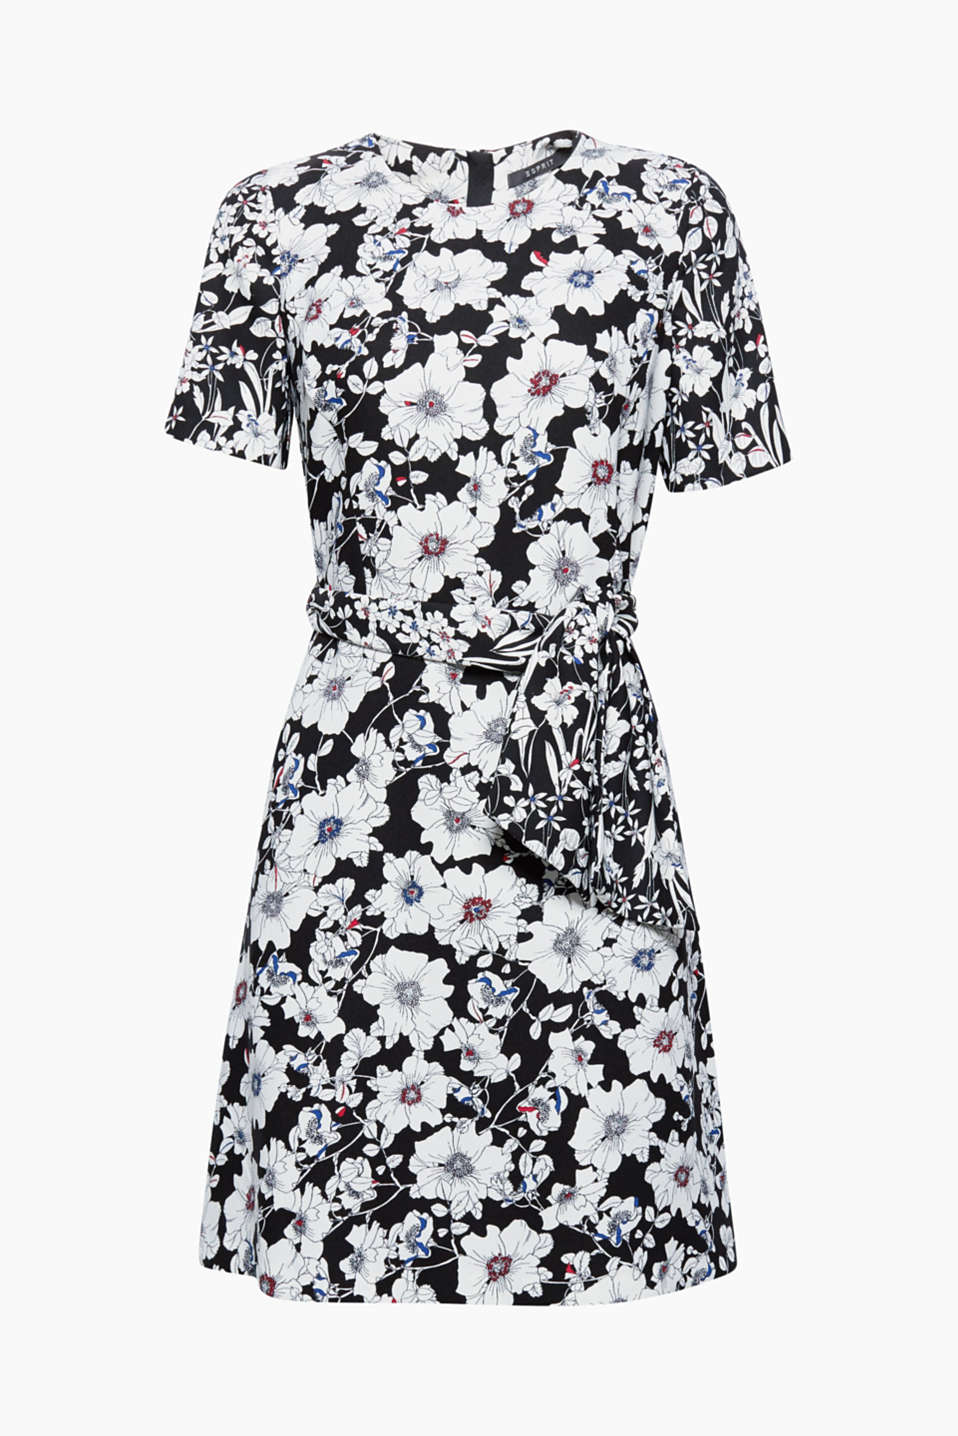 This crêpe dress with a wide tie-around belt and a swirling skirt boasts flower power in an elegant look.